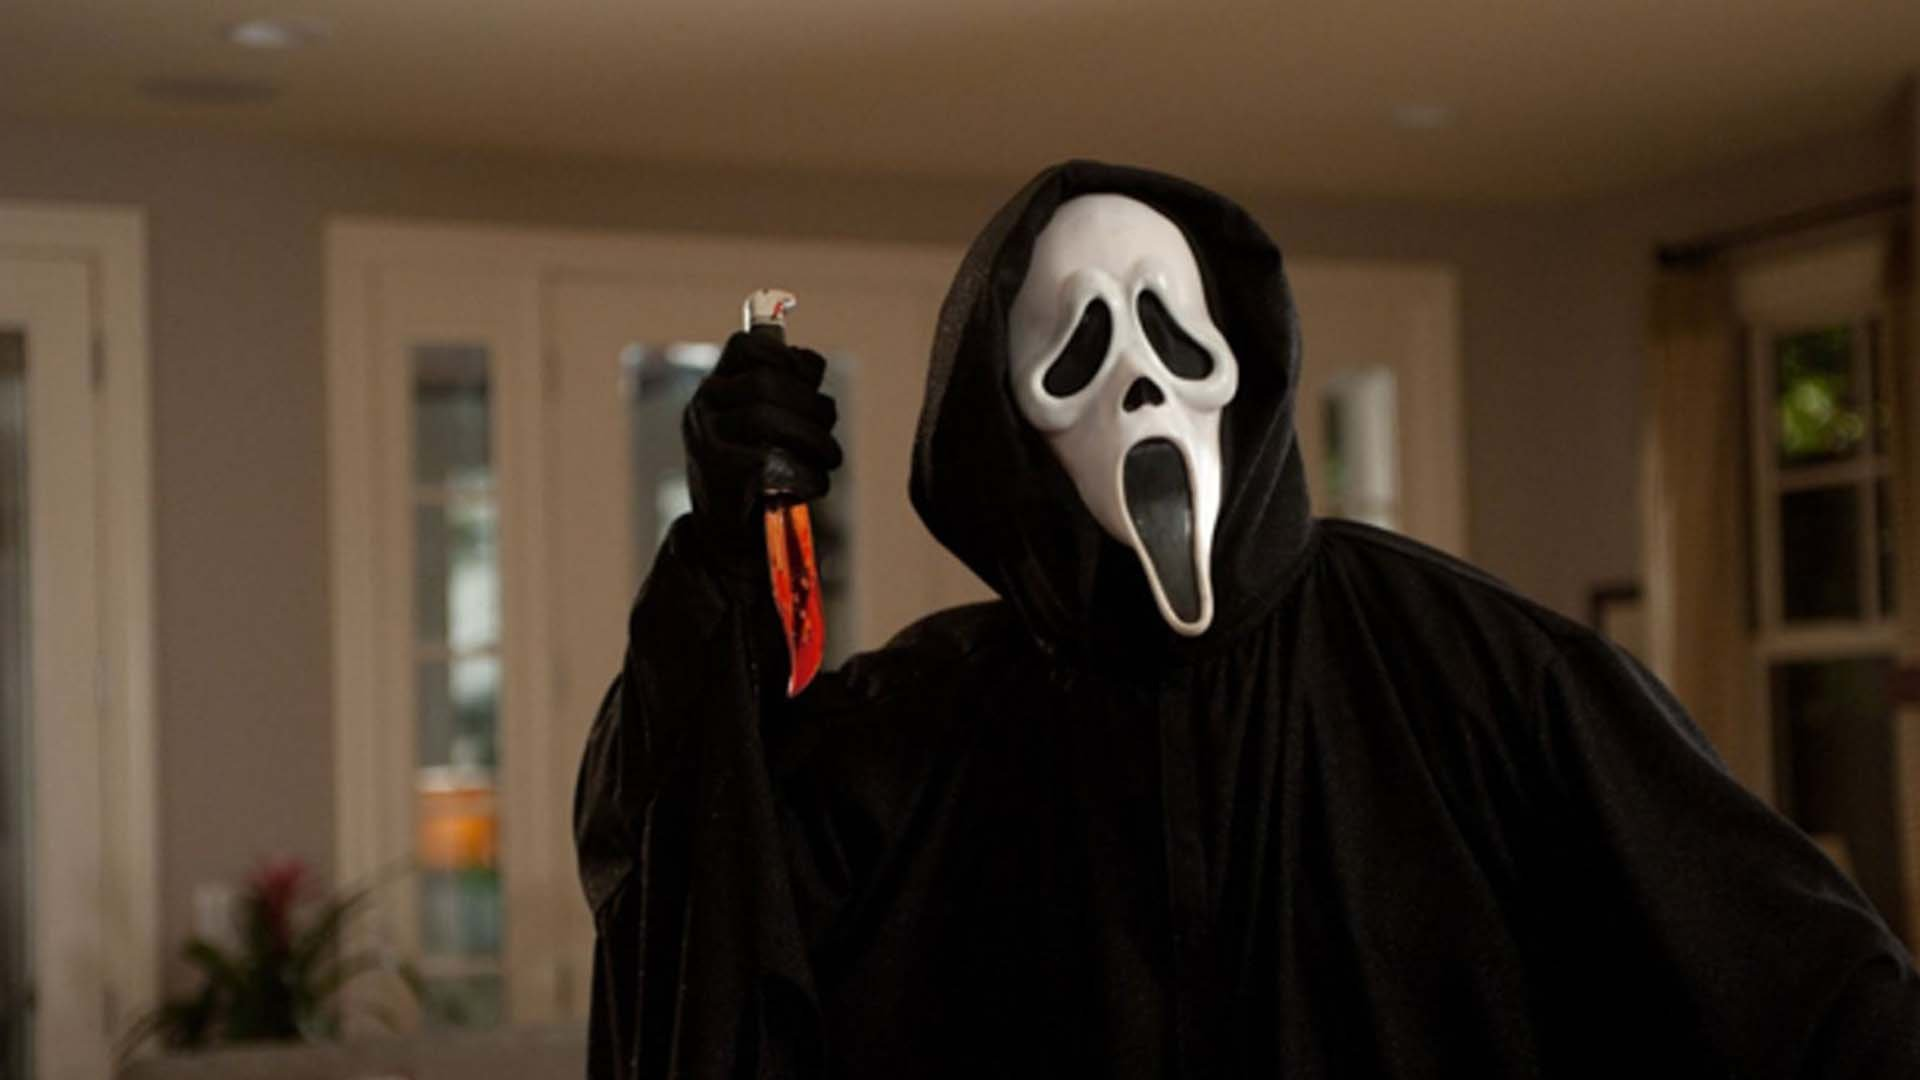 Ghost Face character with a knife in Scream